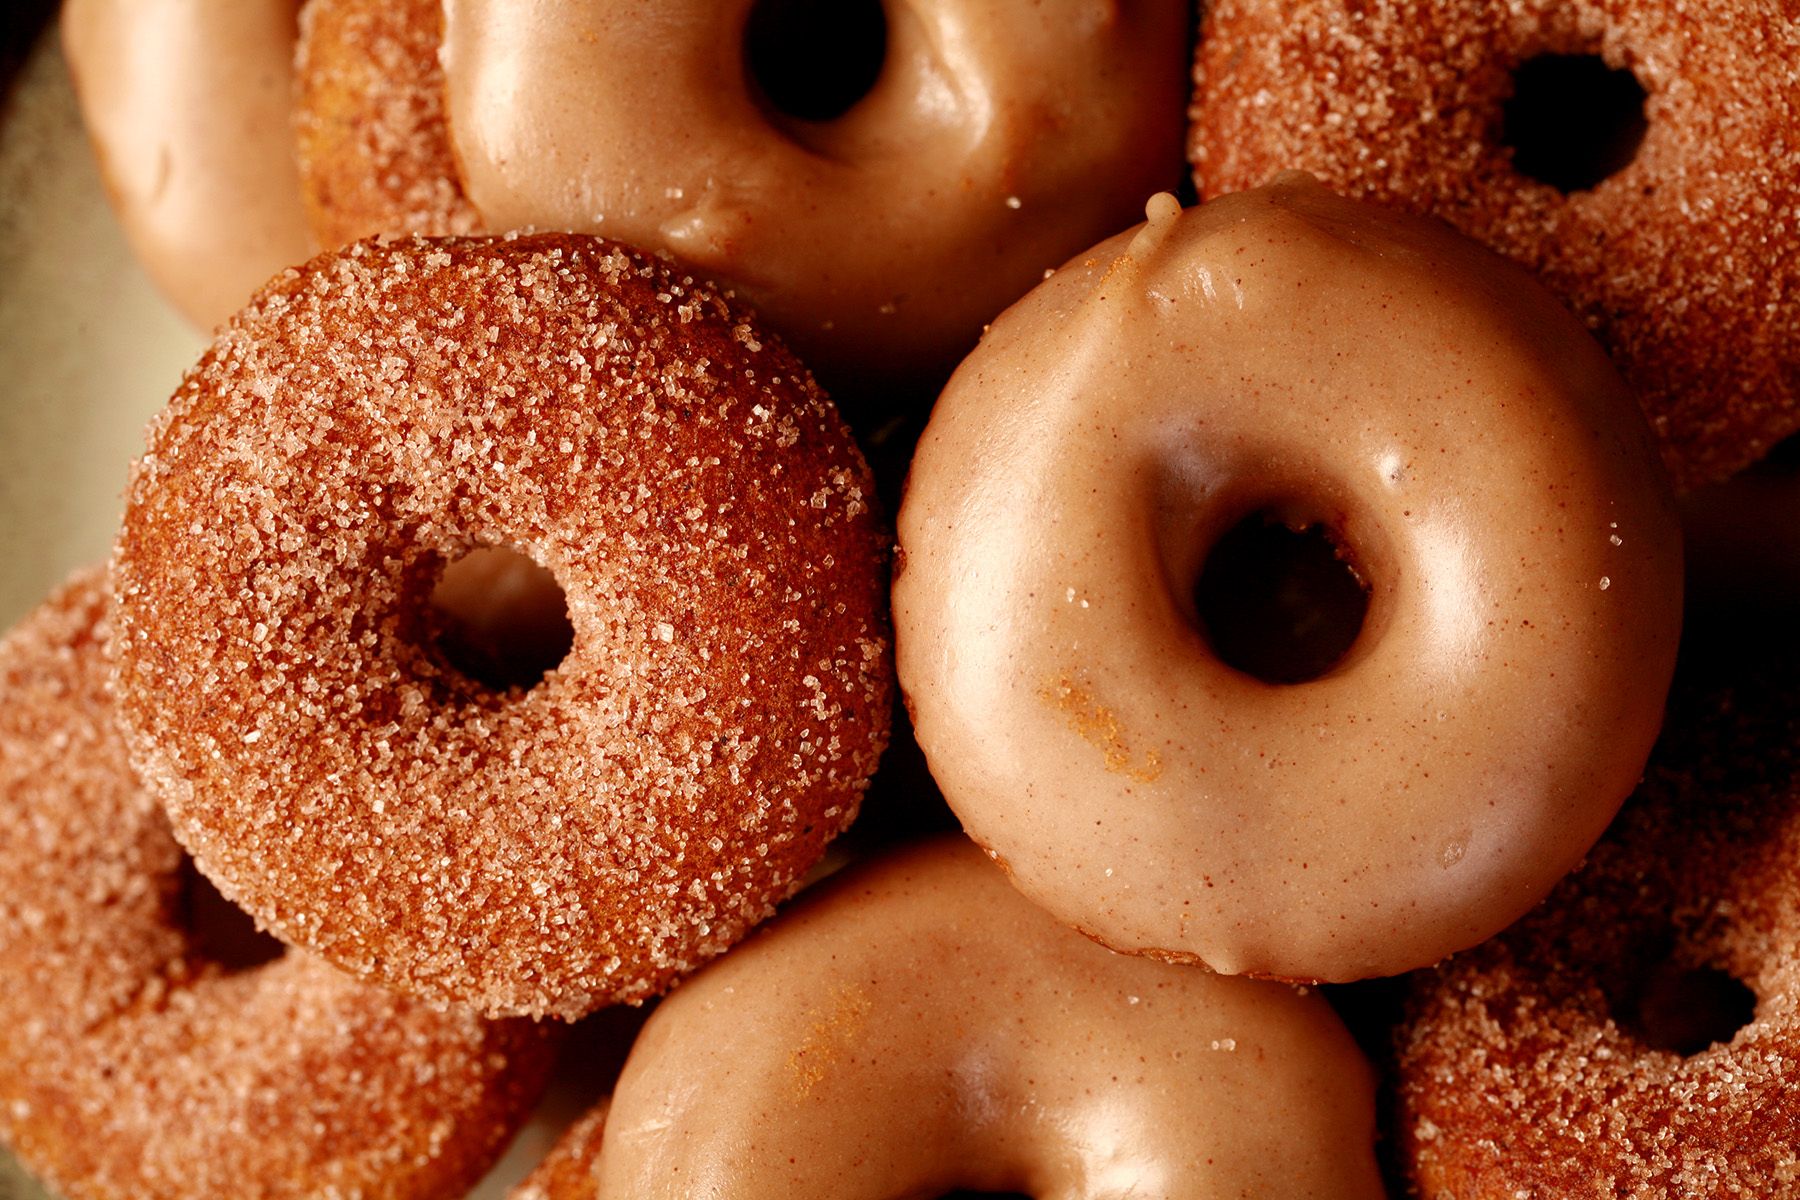 Close up view of gluten-free pumpkin spice mini doughnuts. Some are coated in cinnamon sugar, others are glazed with a tan coloured frosting